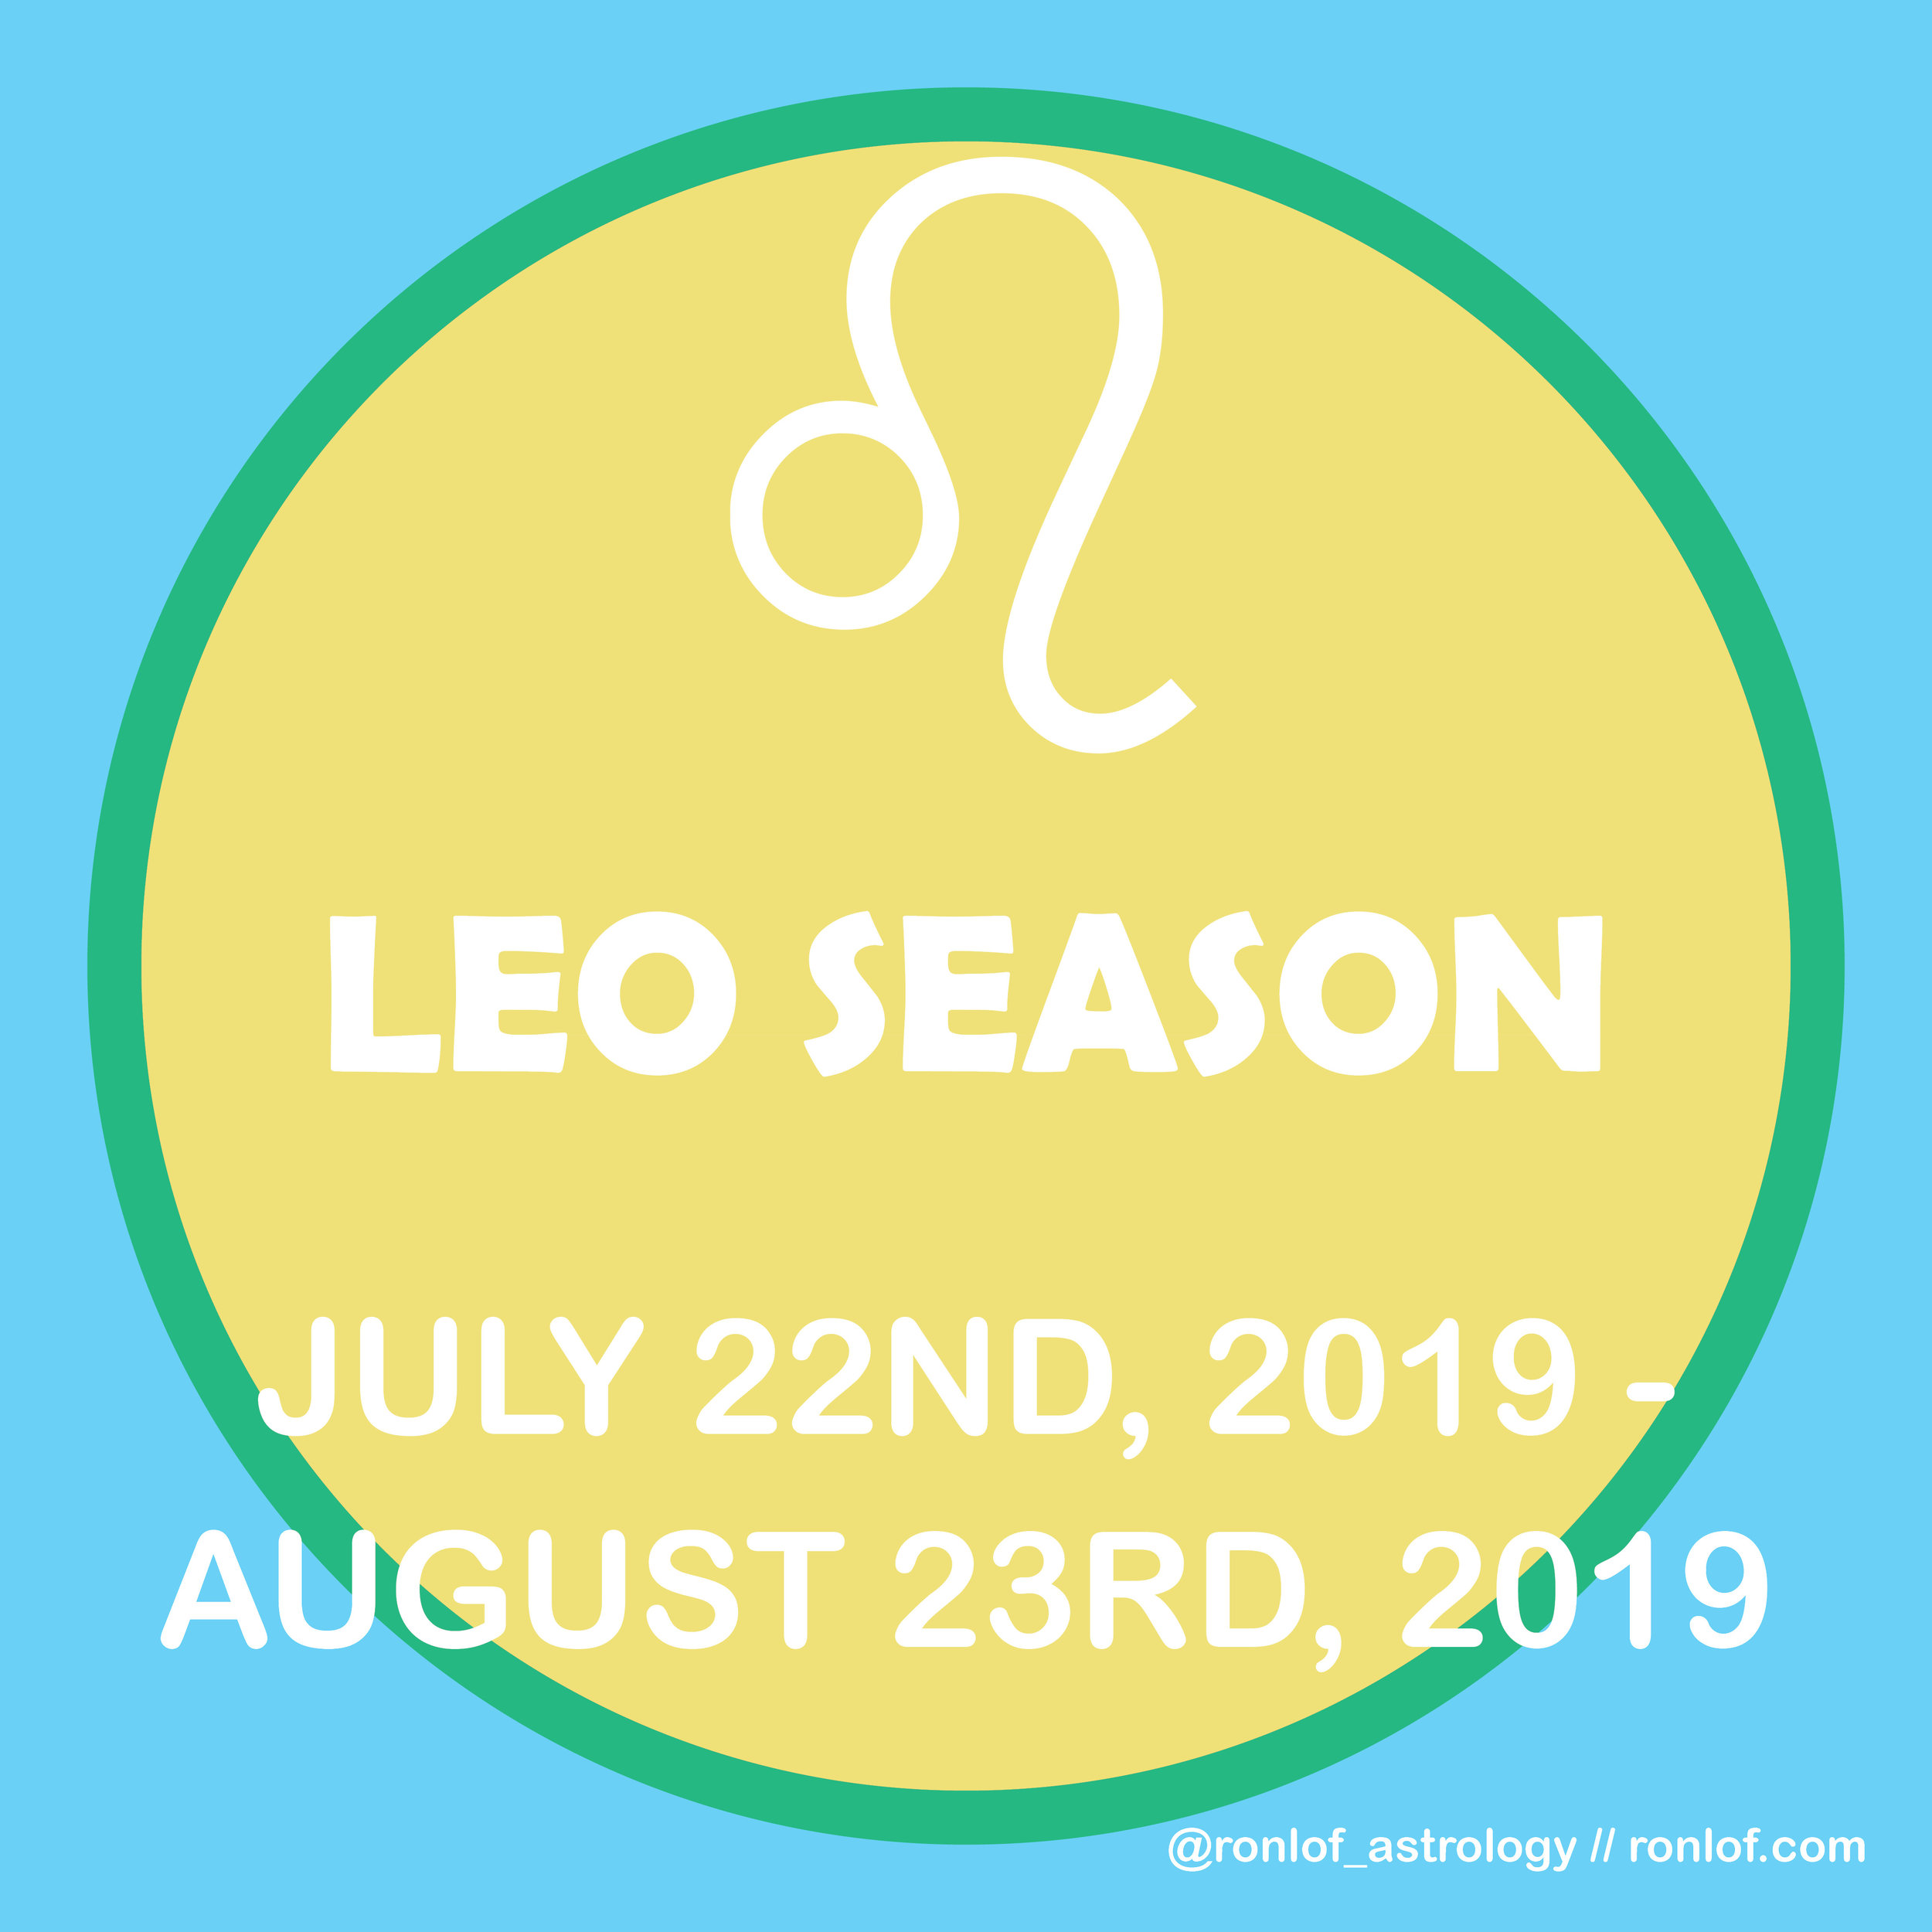 Leo Season Graphic.jpg